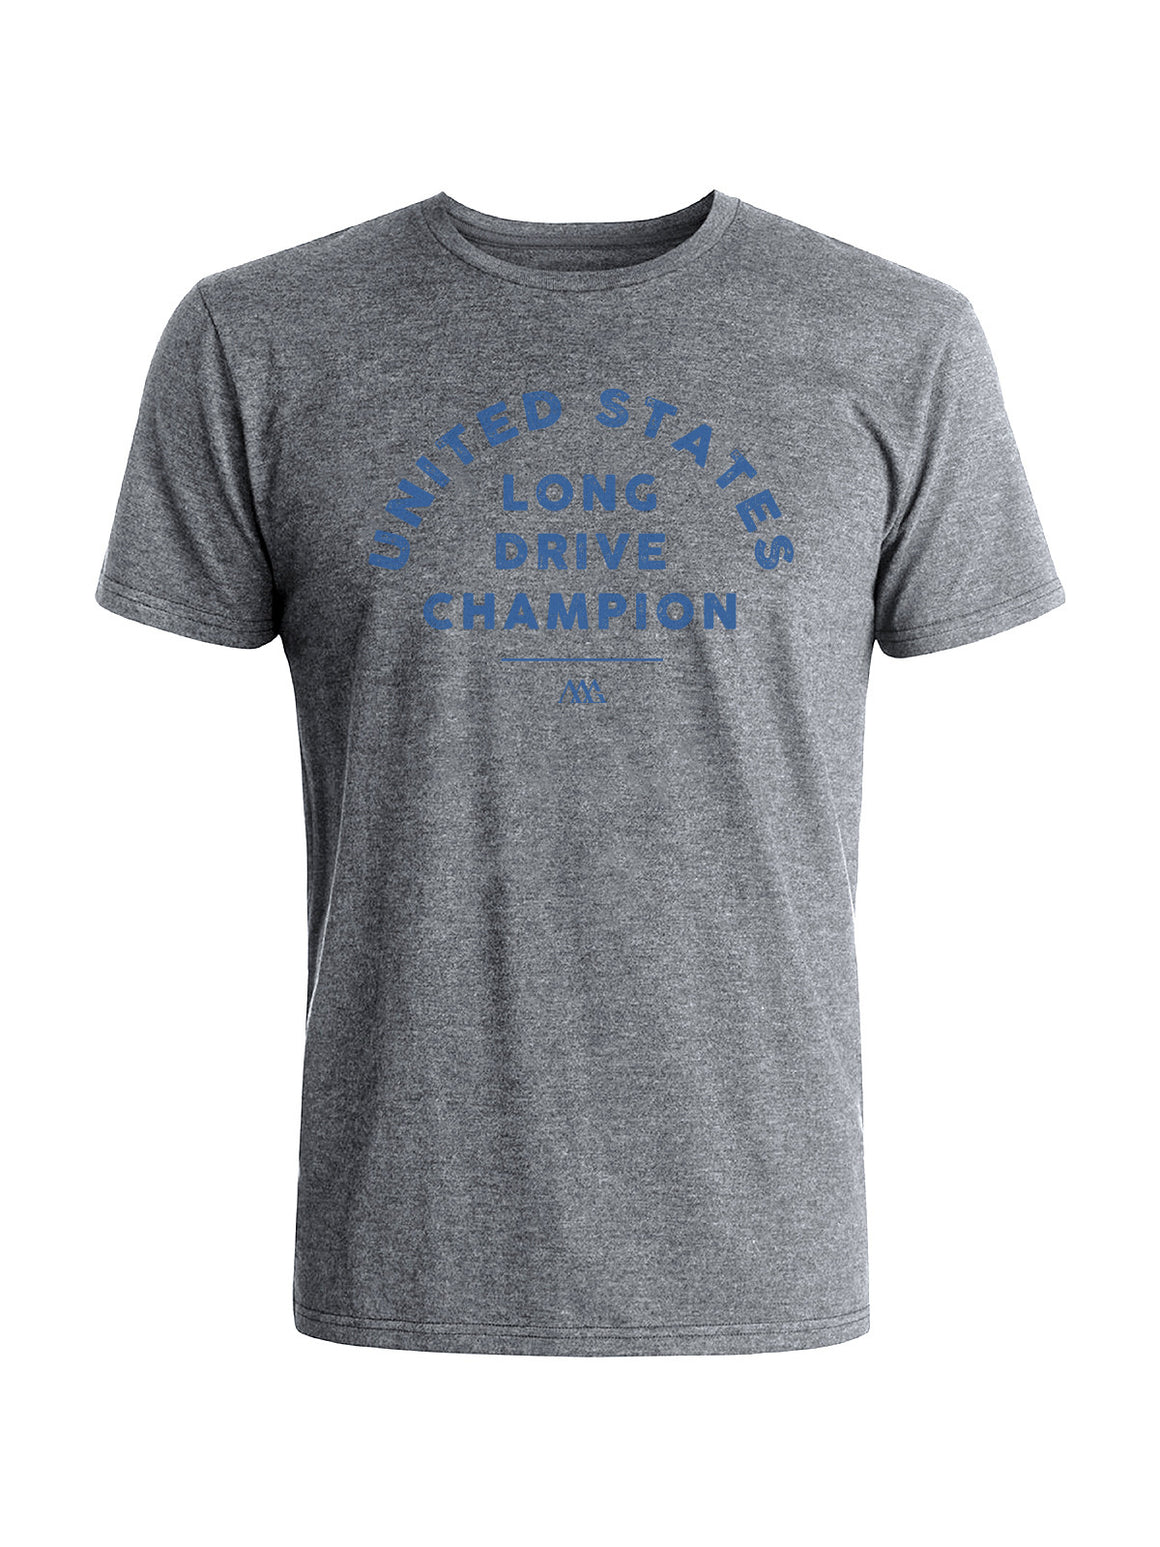 Long Drive Champ Tee Shirt - Gainsburo Heather (Dusty Blue)